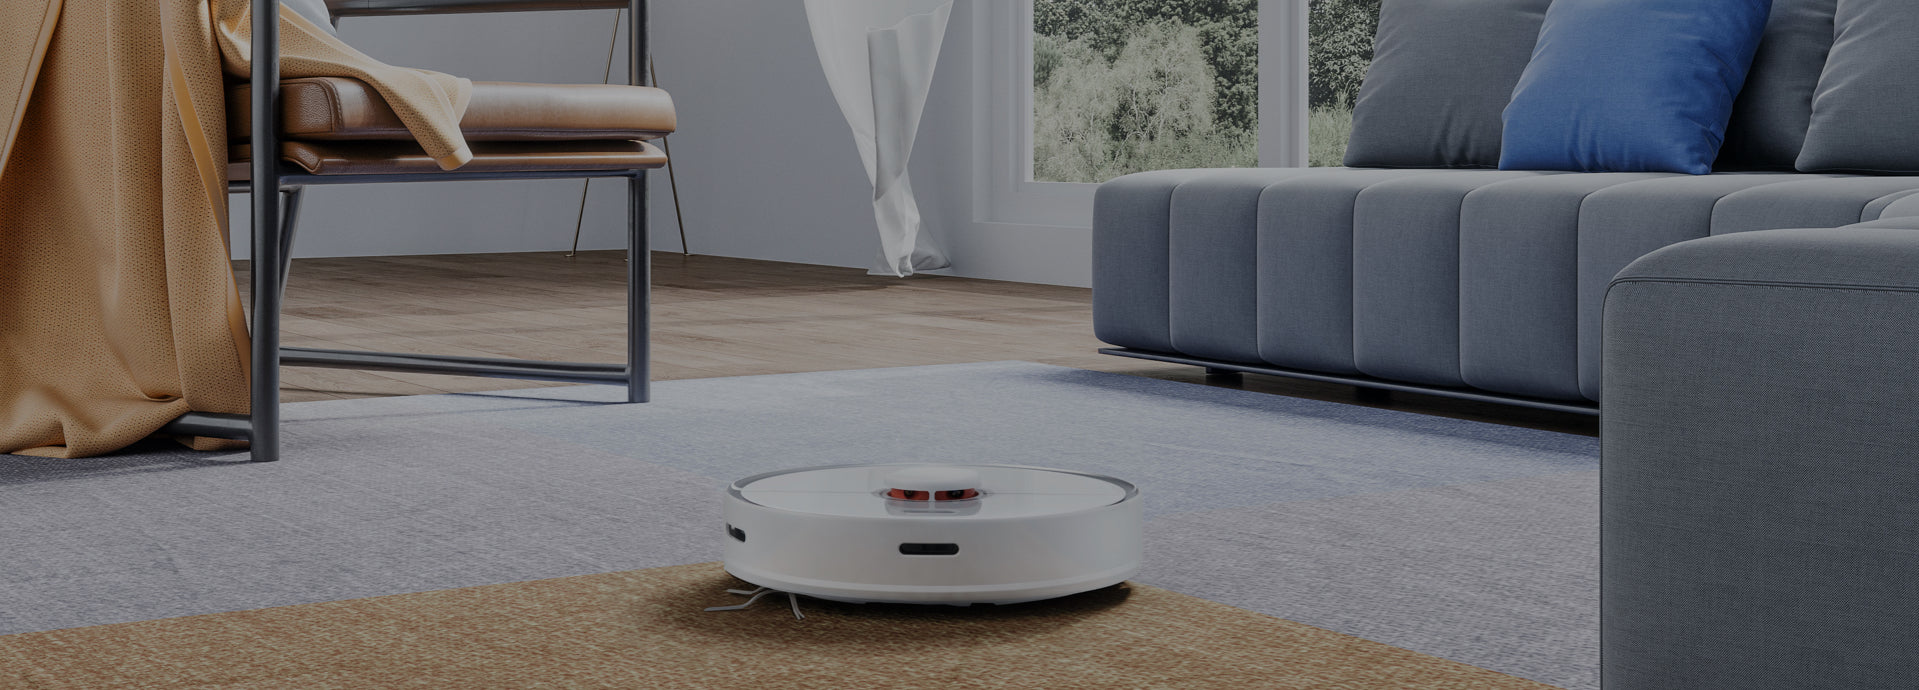 Roborock intelligent robot vacuums